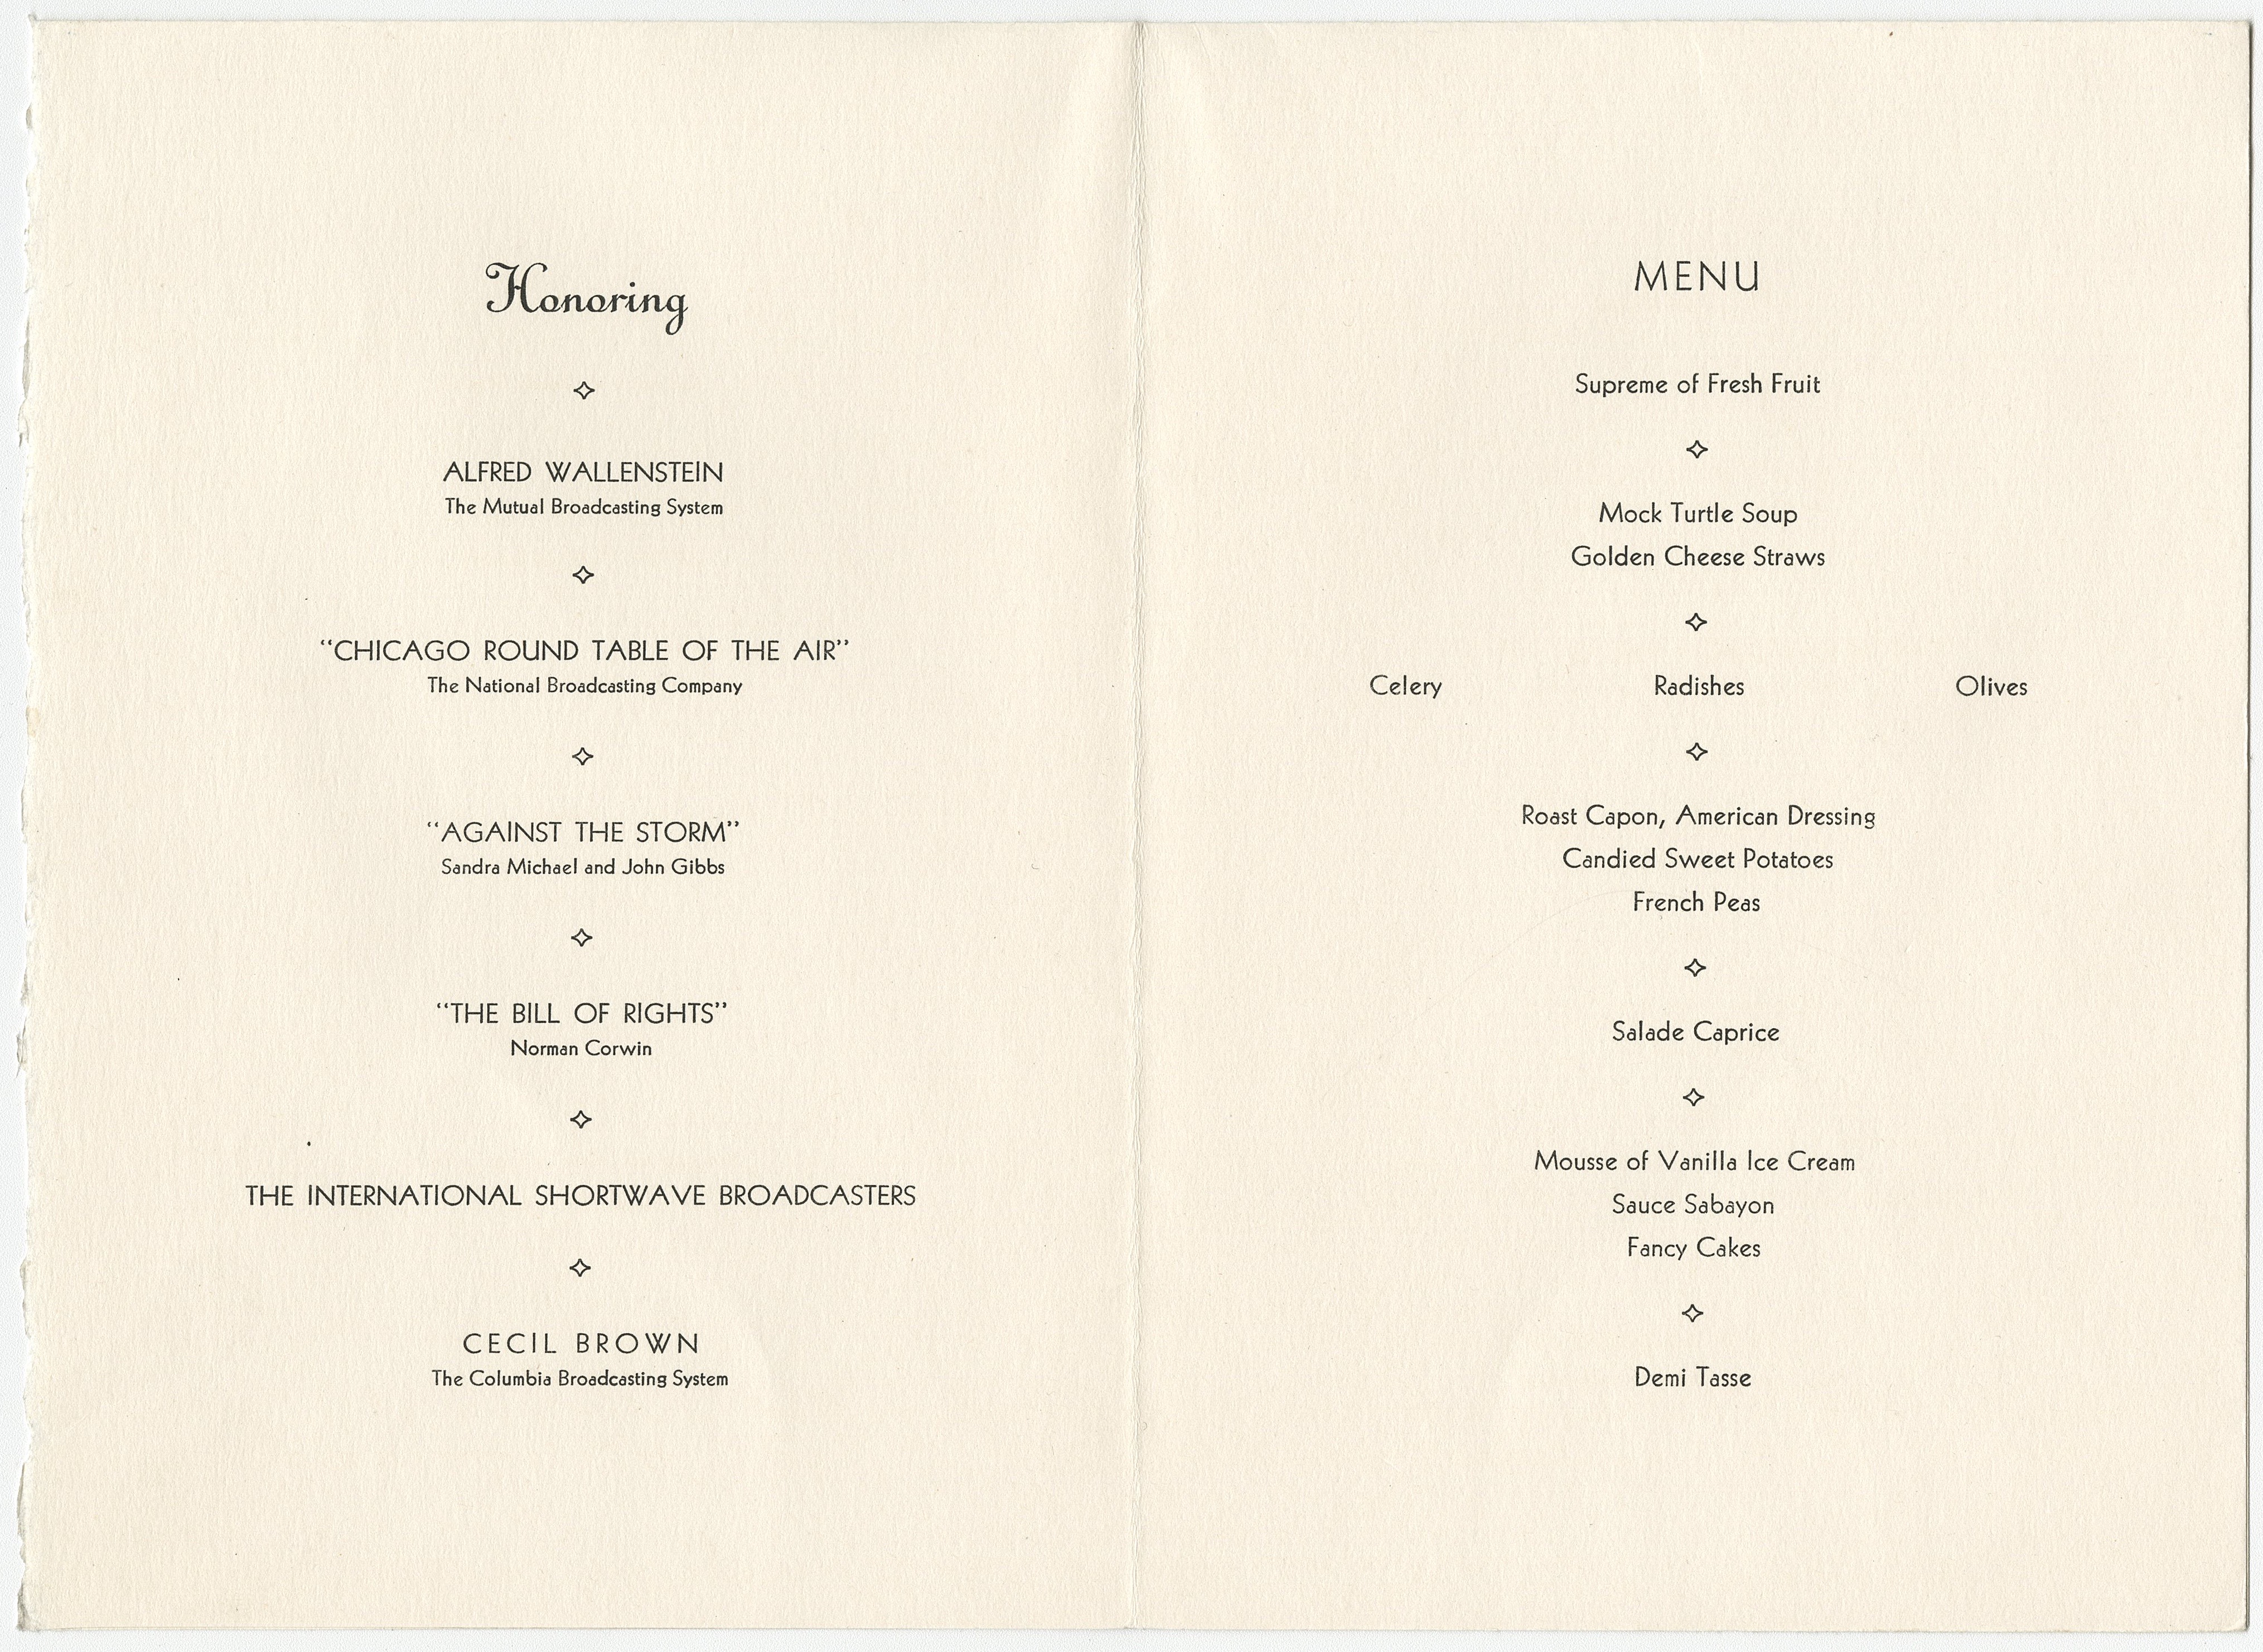 Inside of the menu for the 1942 George Foster Peabody Radio Awards Dinner, ms3000, Hargrett Rare Book and Manuscript Library, University of Georgia Libraries.